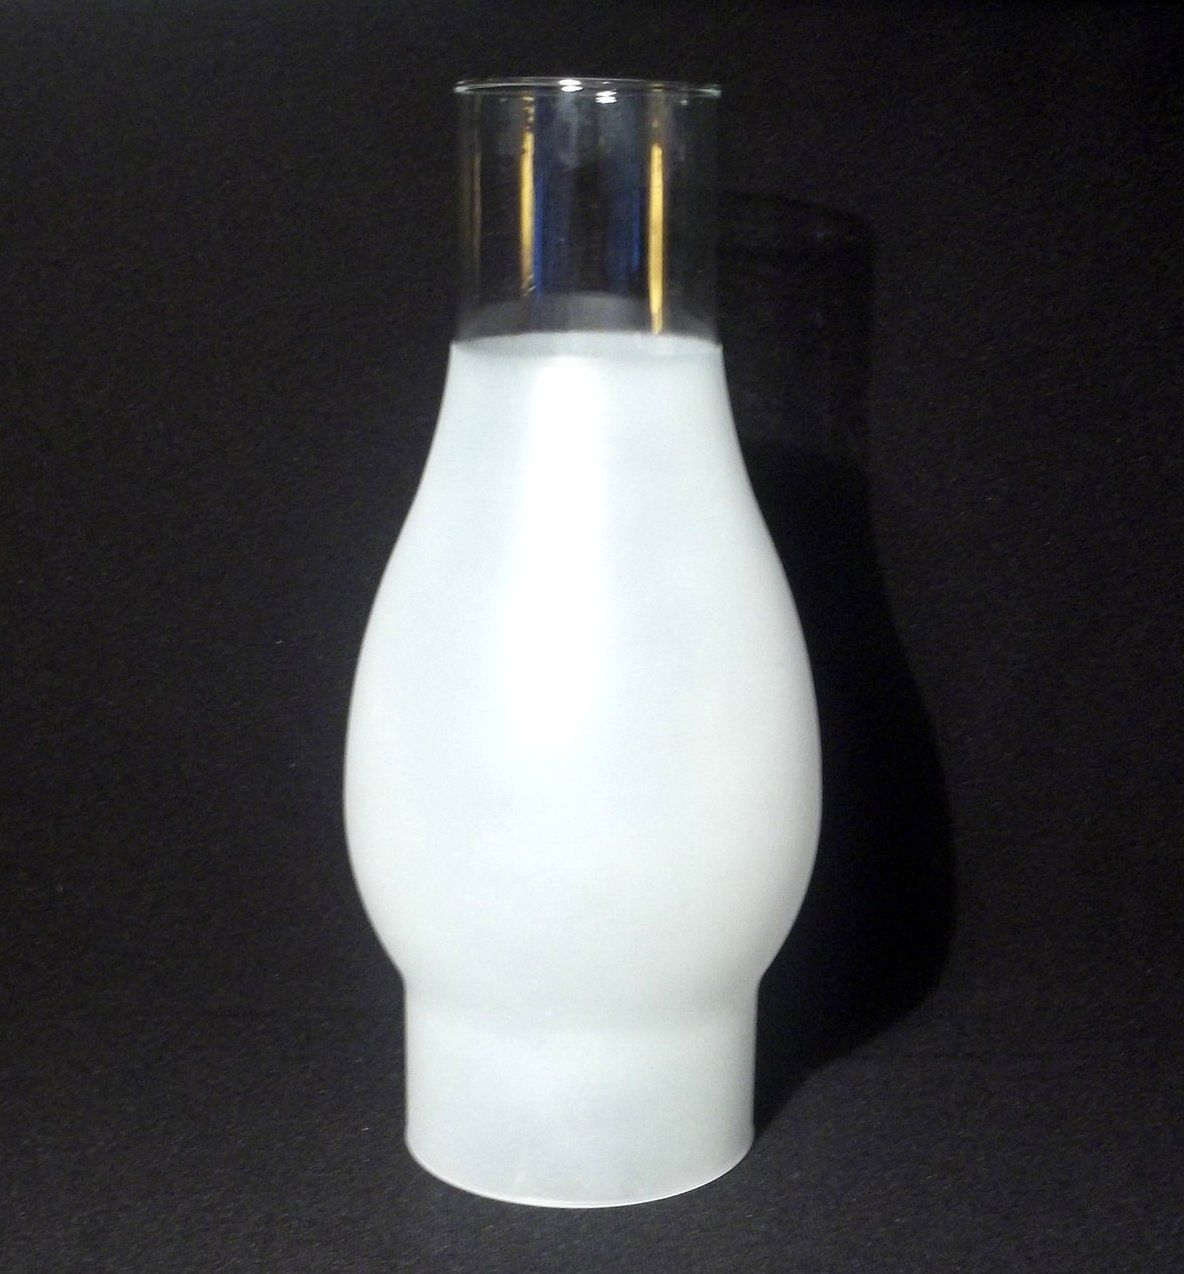 Hurricane lamp shade 34 frosted 2 58 inch fitter x 7 78 oos hurricane lamp shade 34 frosted 7 78 with 2 58 inch fitter hand blown glass replacement shade for your sconce lamp oil or electric or candle holder aloadofball